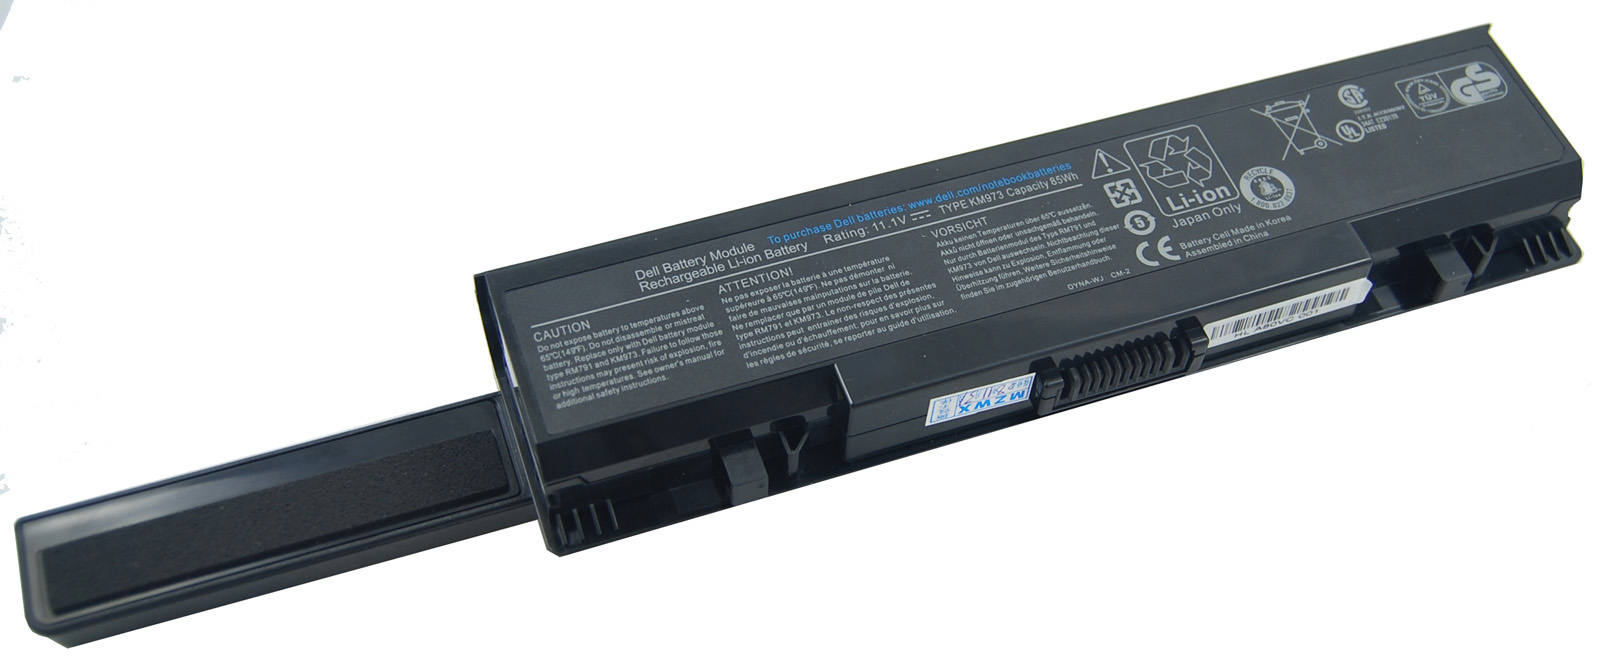 DELL Studio 1735H Laptop Battery